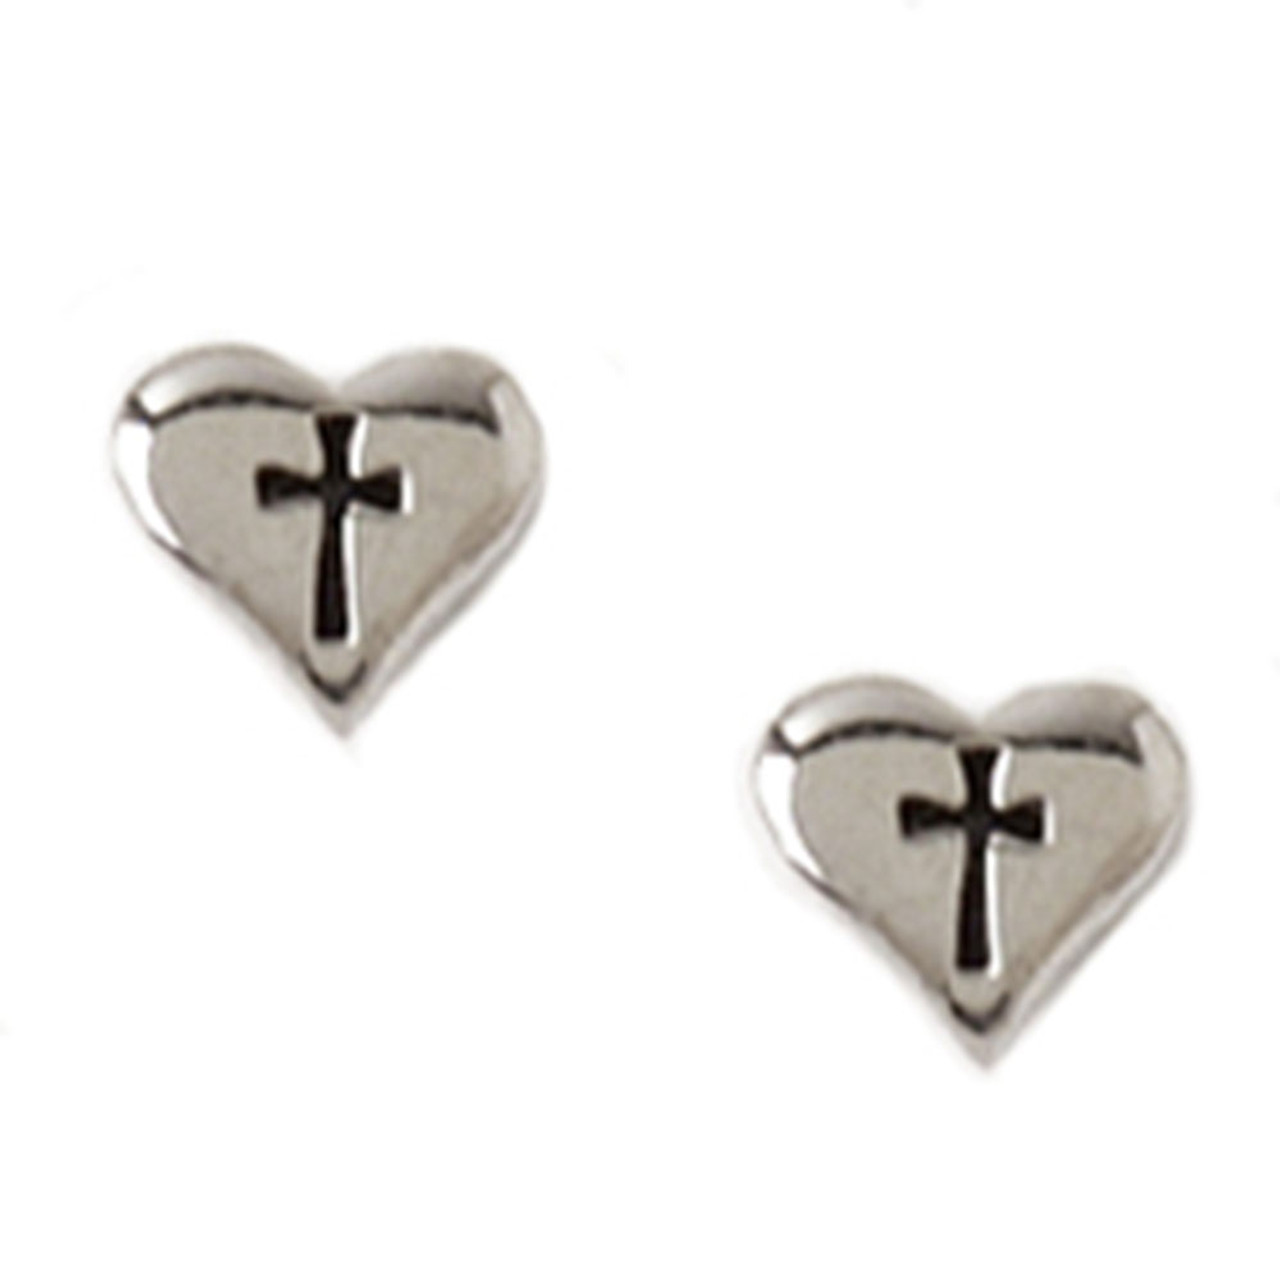 Heart with Cross Earrings, Rhodium Plated